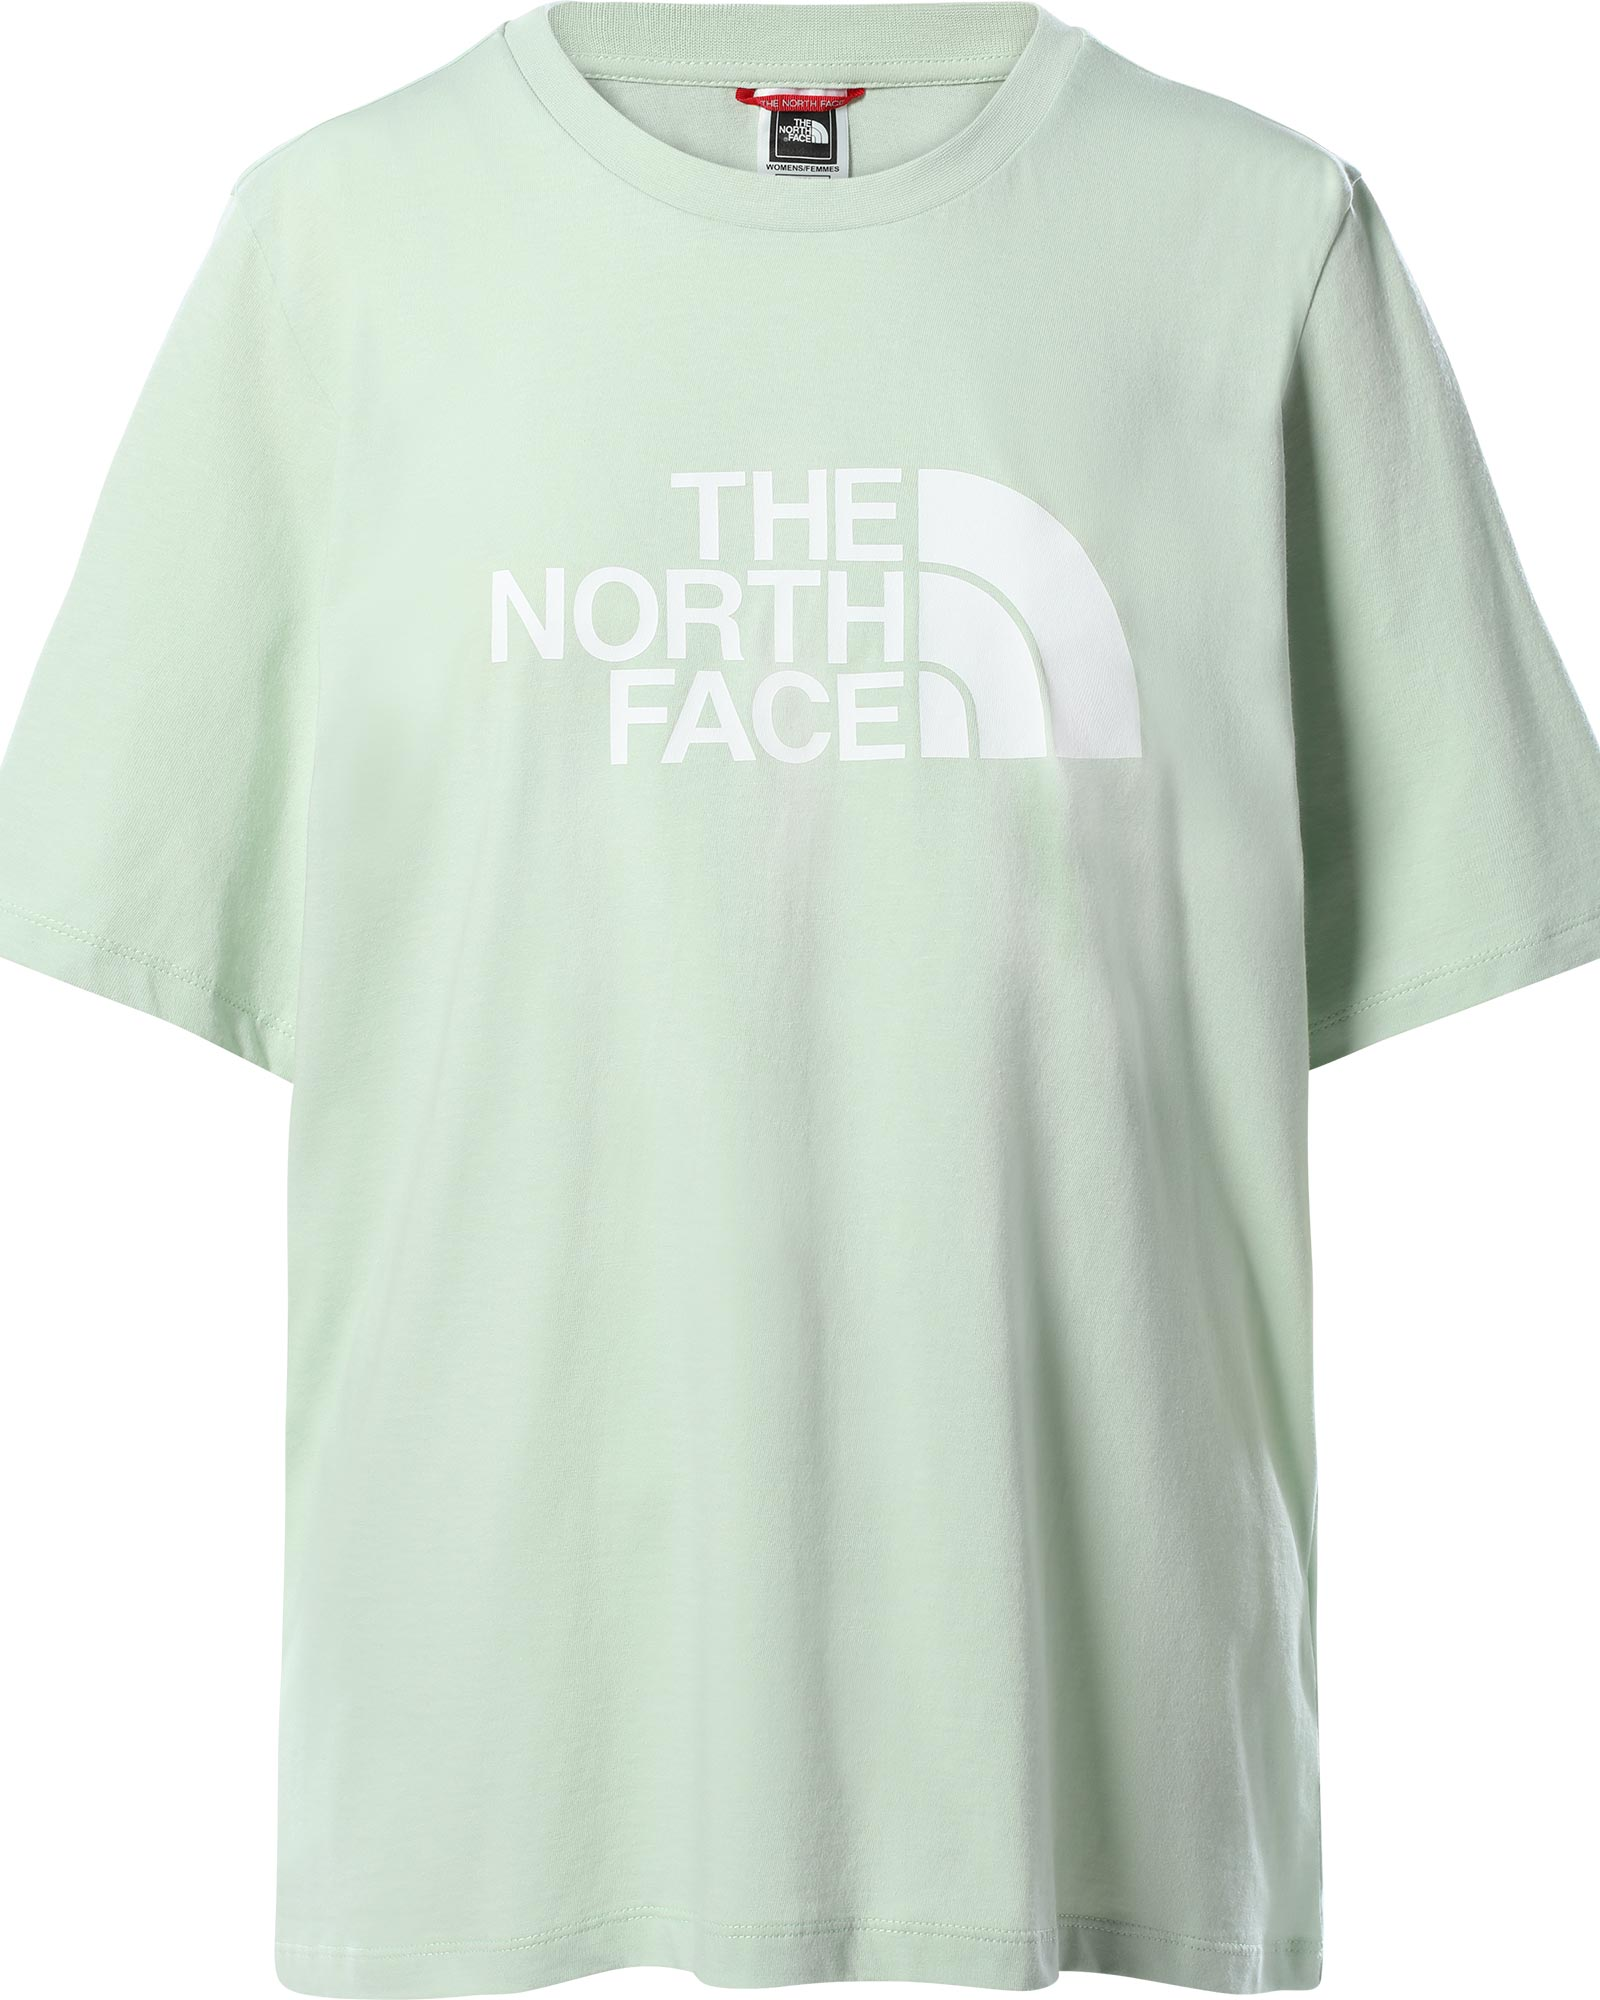 The North Face Women's BF Easy T-Shirt 0